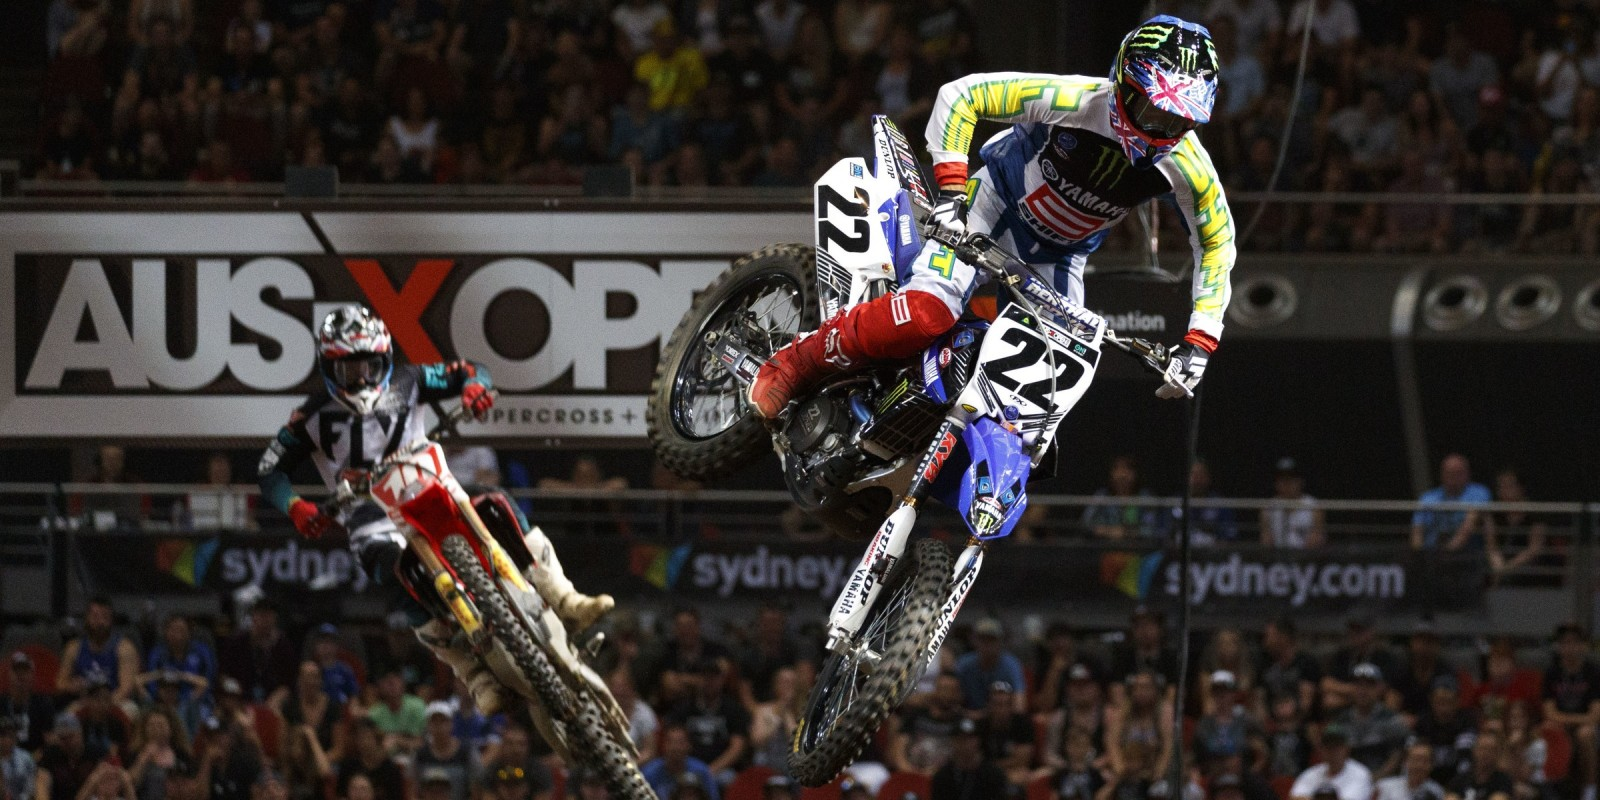 AUS-X Open Sydney 2016, Chad Reed, Day 1, Day one